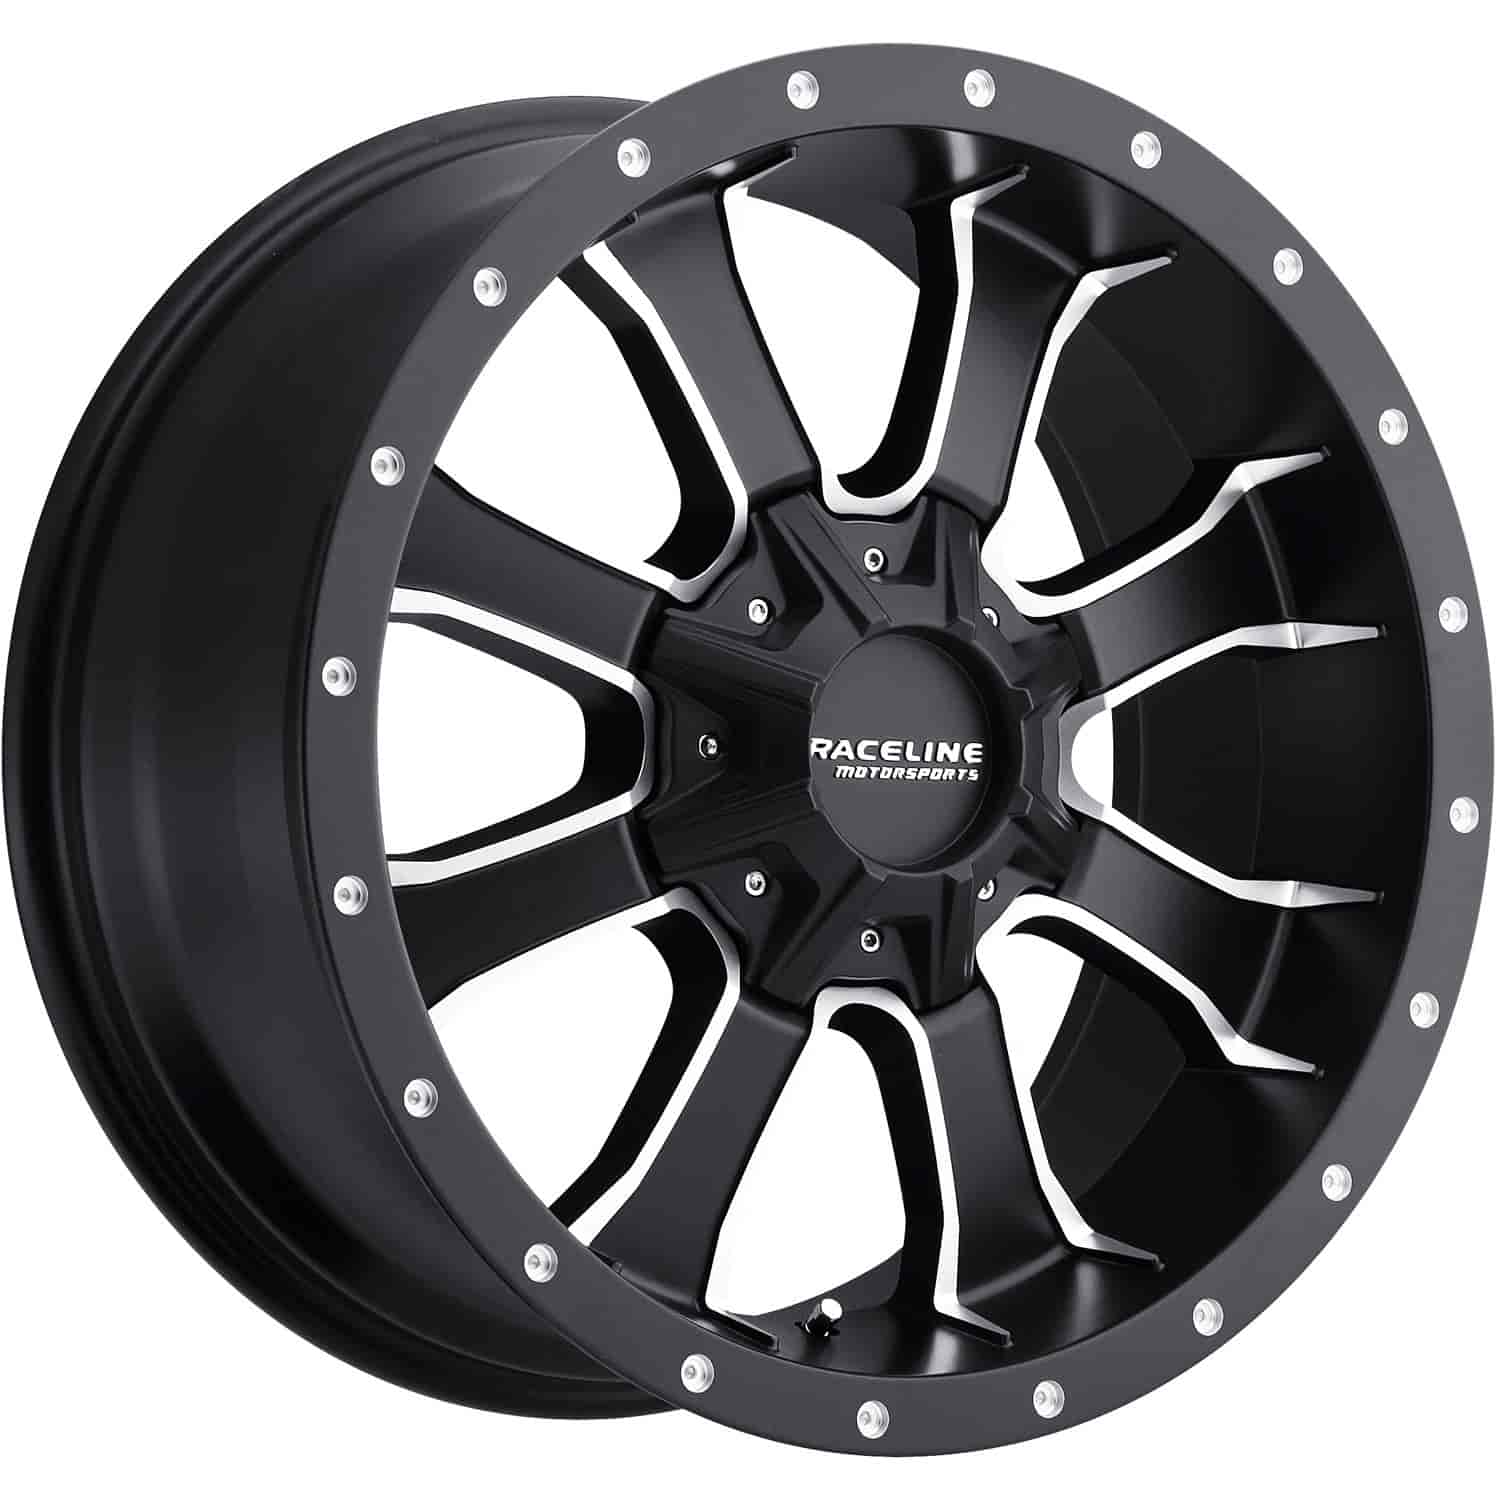 Raceline Wheels 927M-7906600